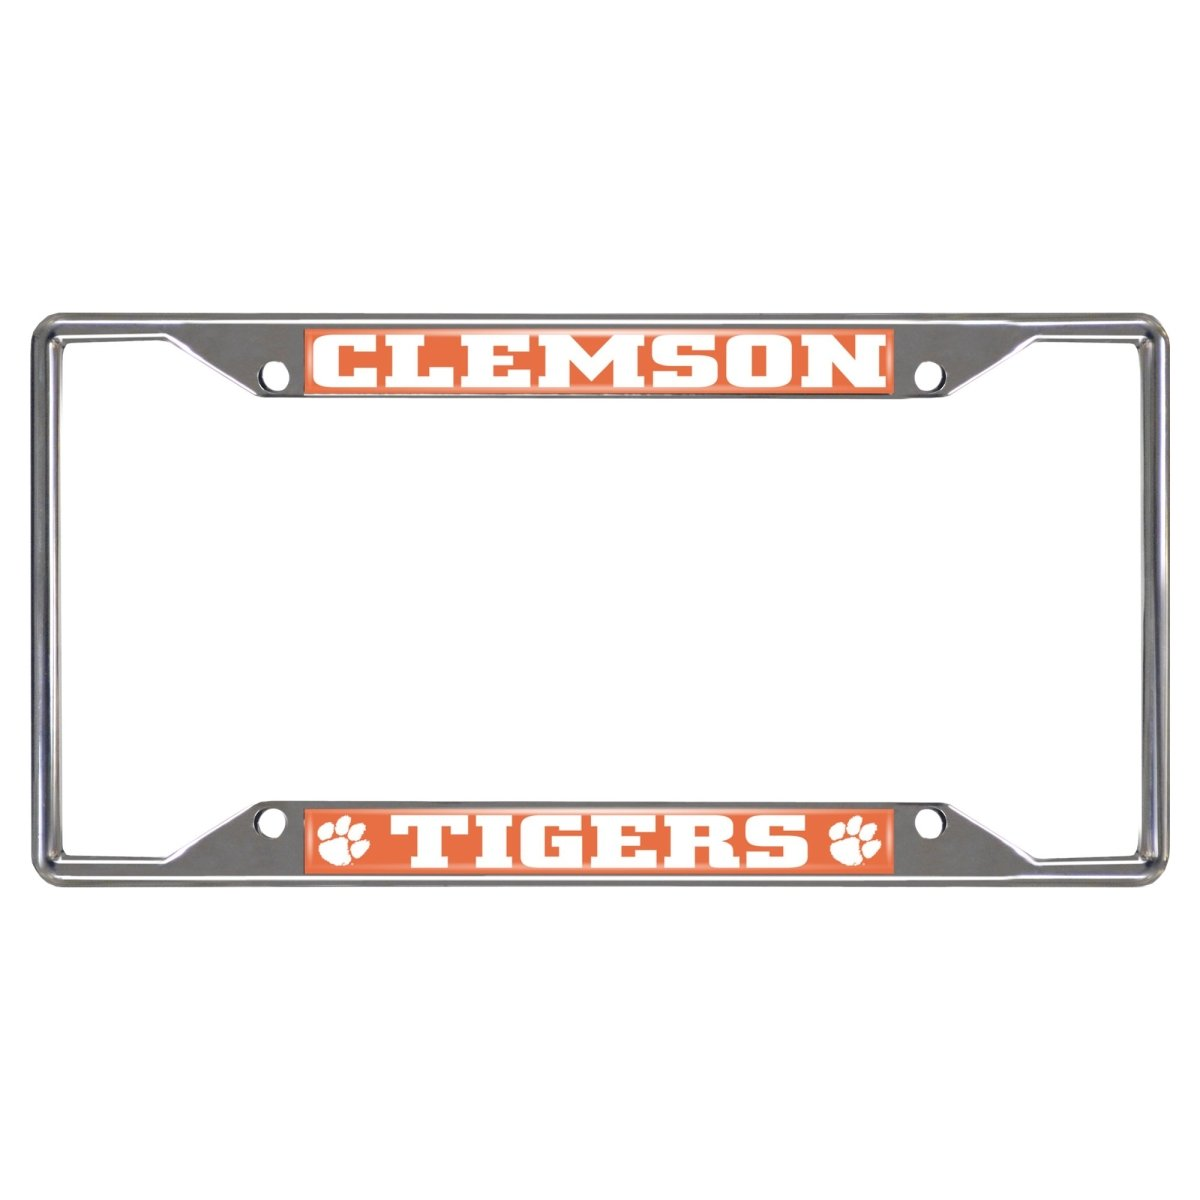 Fanmats Clemson Tigers Chrome License Plate Frame - Mr. Knickerbocker